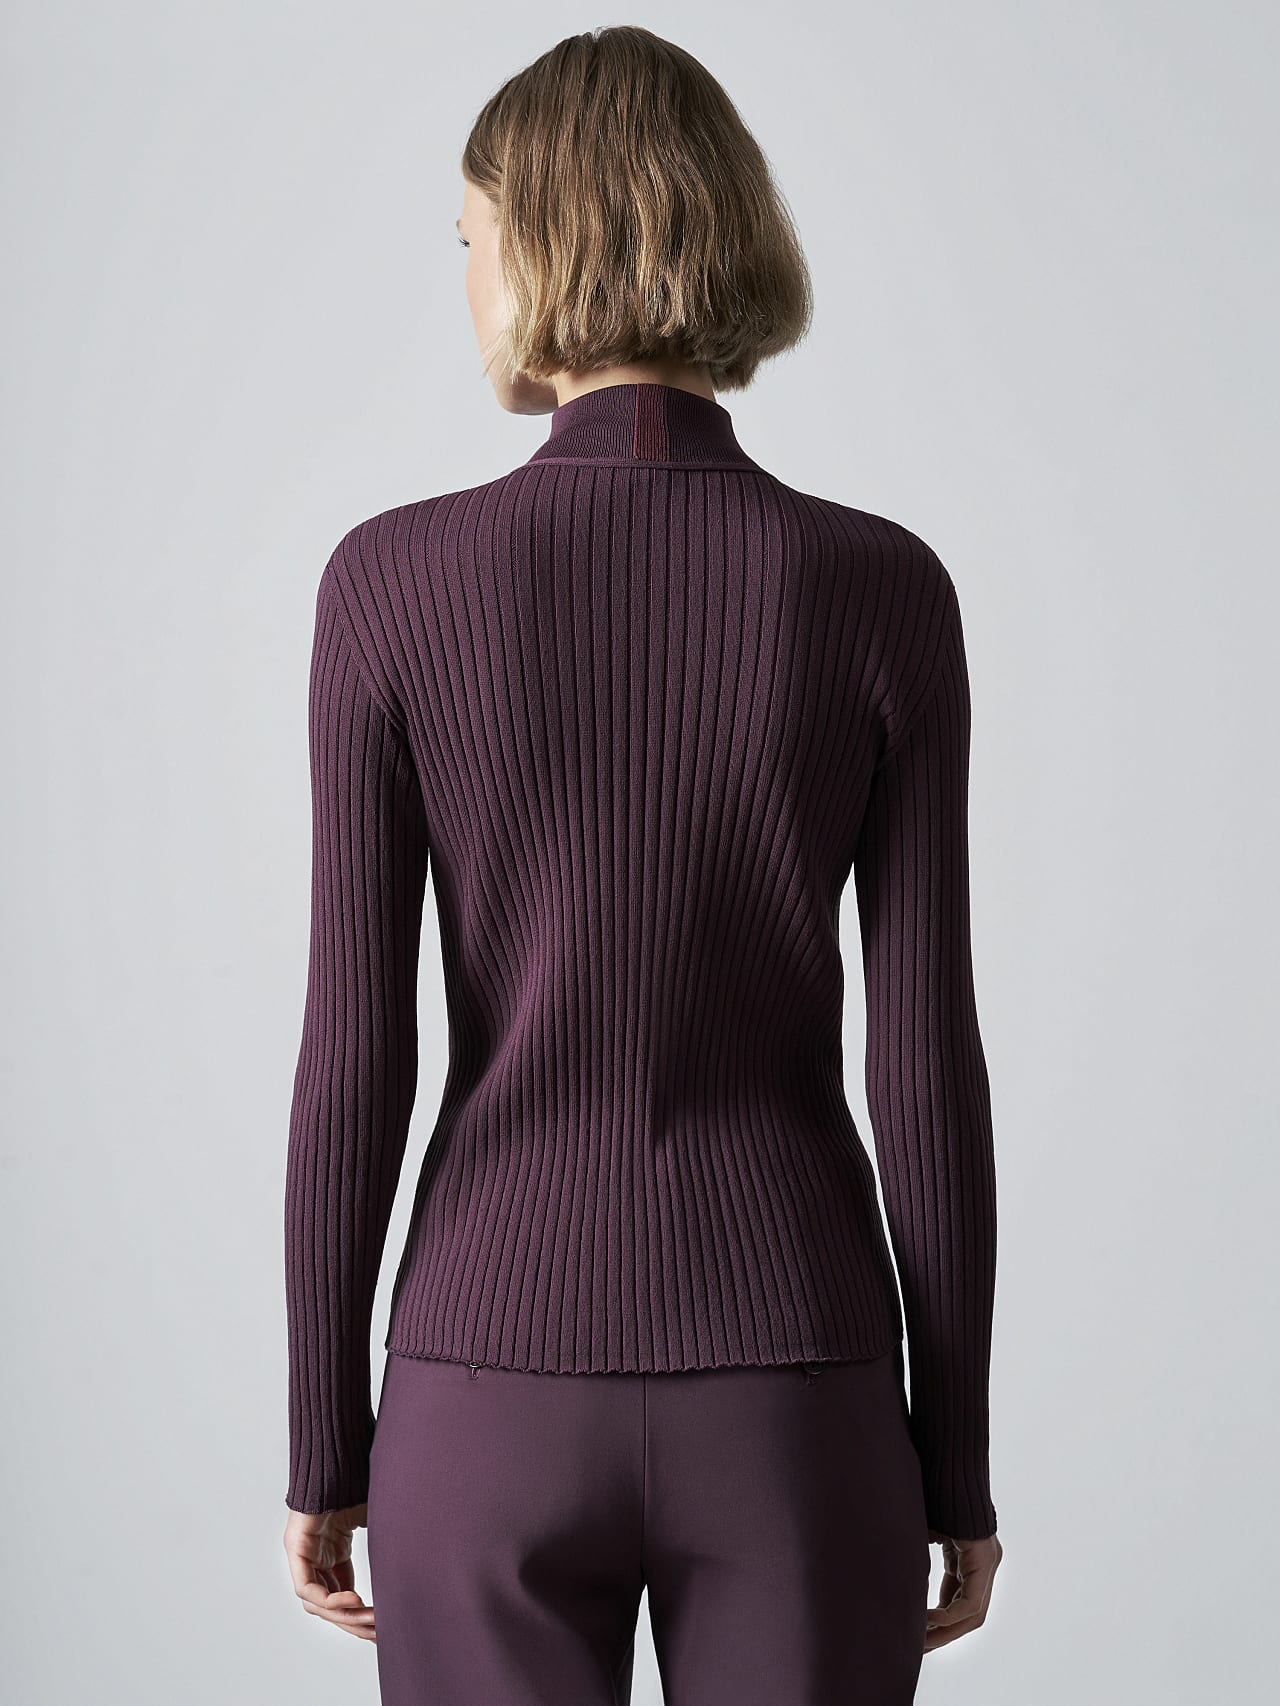 FAXEE V1.Y5.02 Seamless 3D Knit Mock-Neck Jumper Burgundy Front Main Alpha Tauri